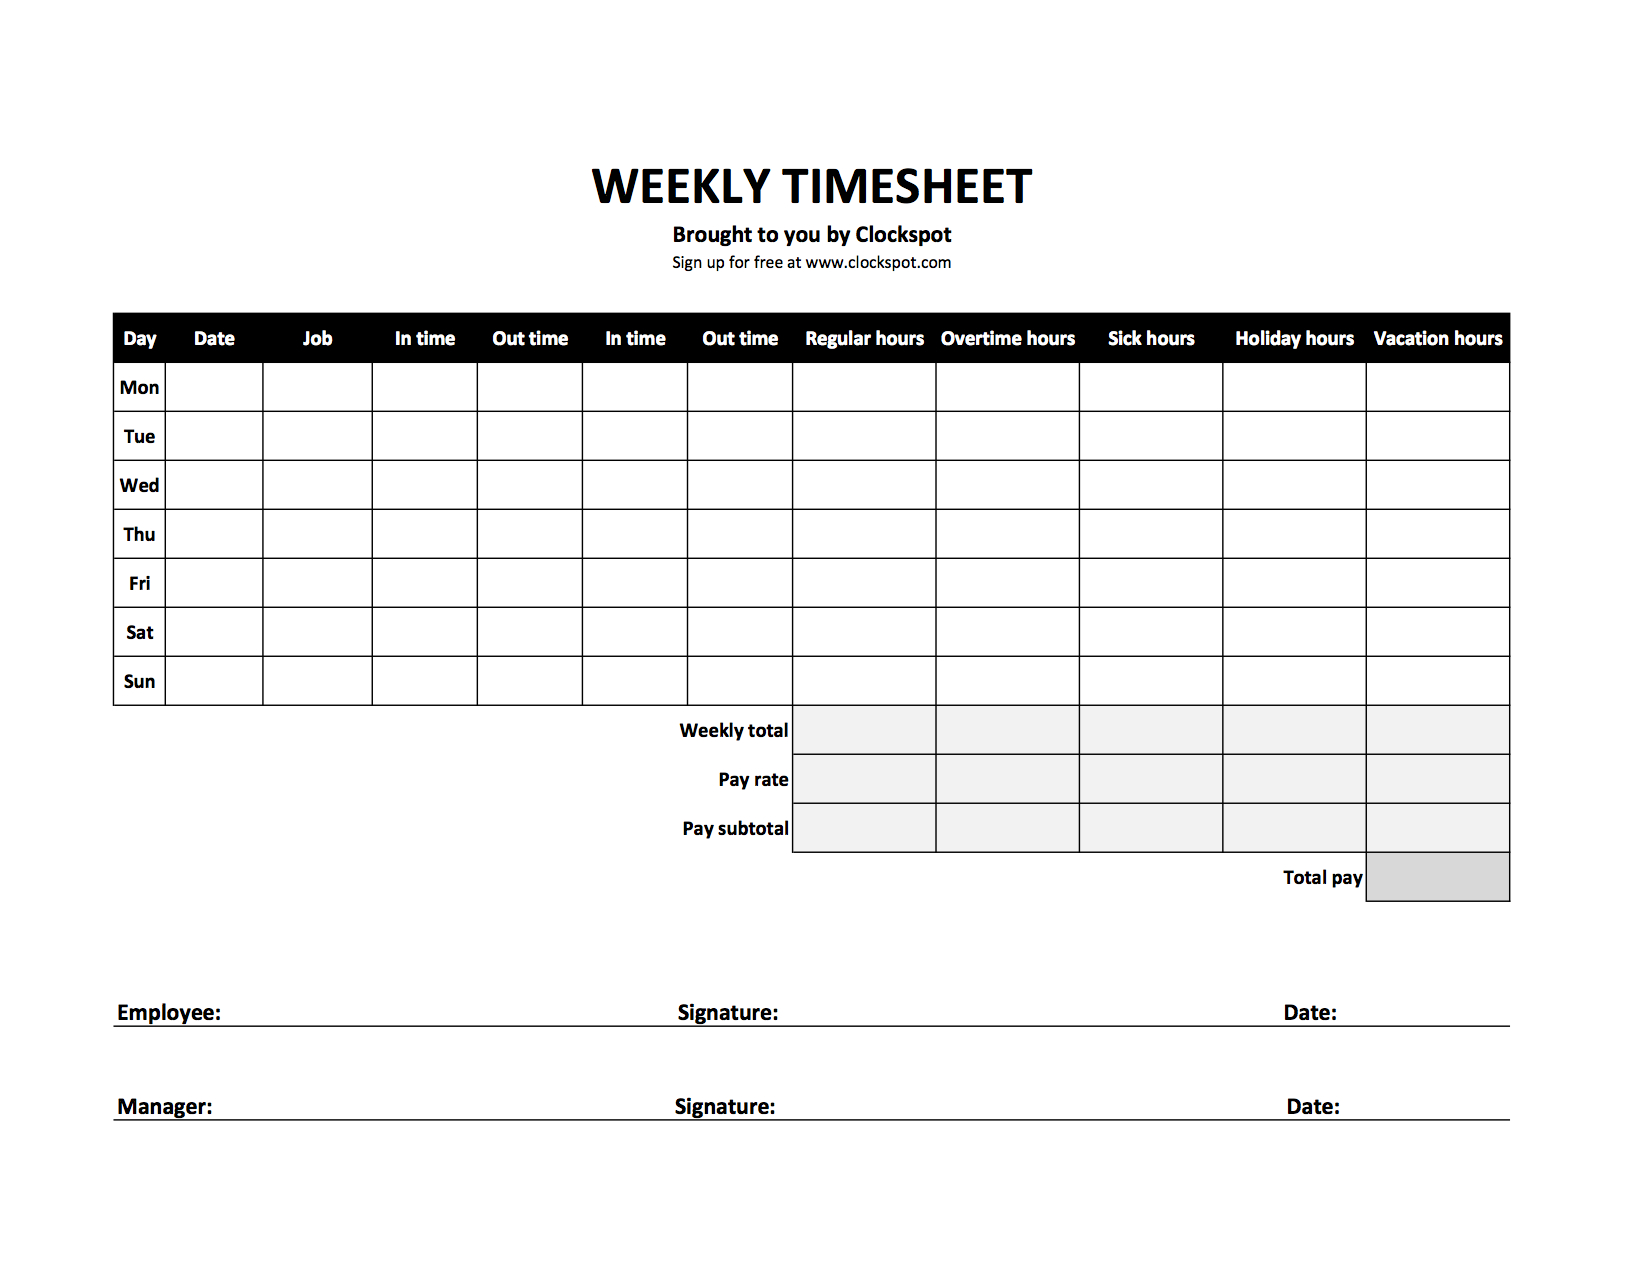 Excel Spreadsheet Timesheet In Free Time Tracking